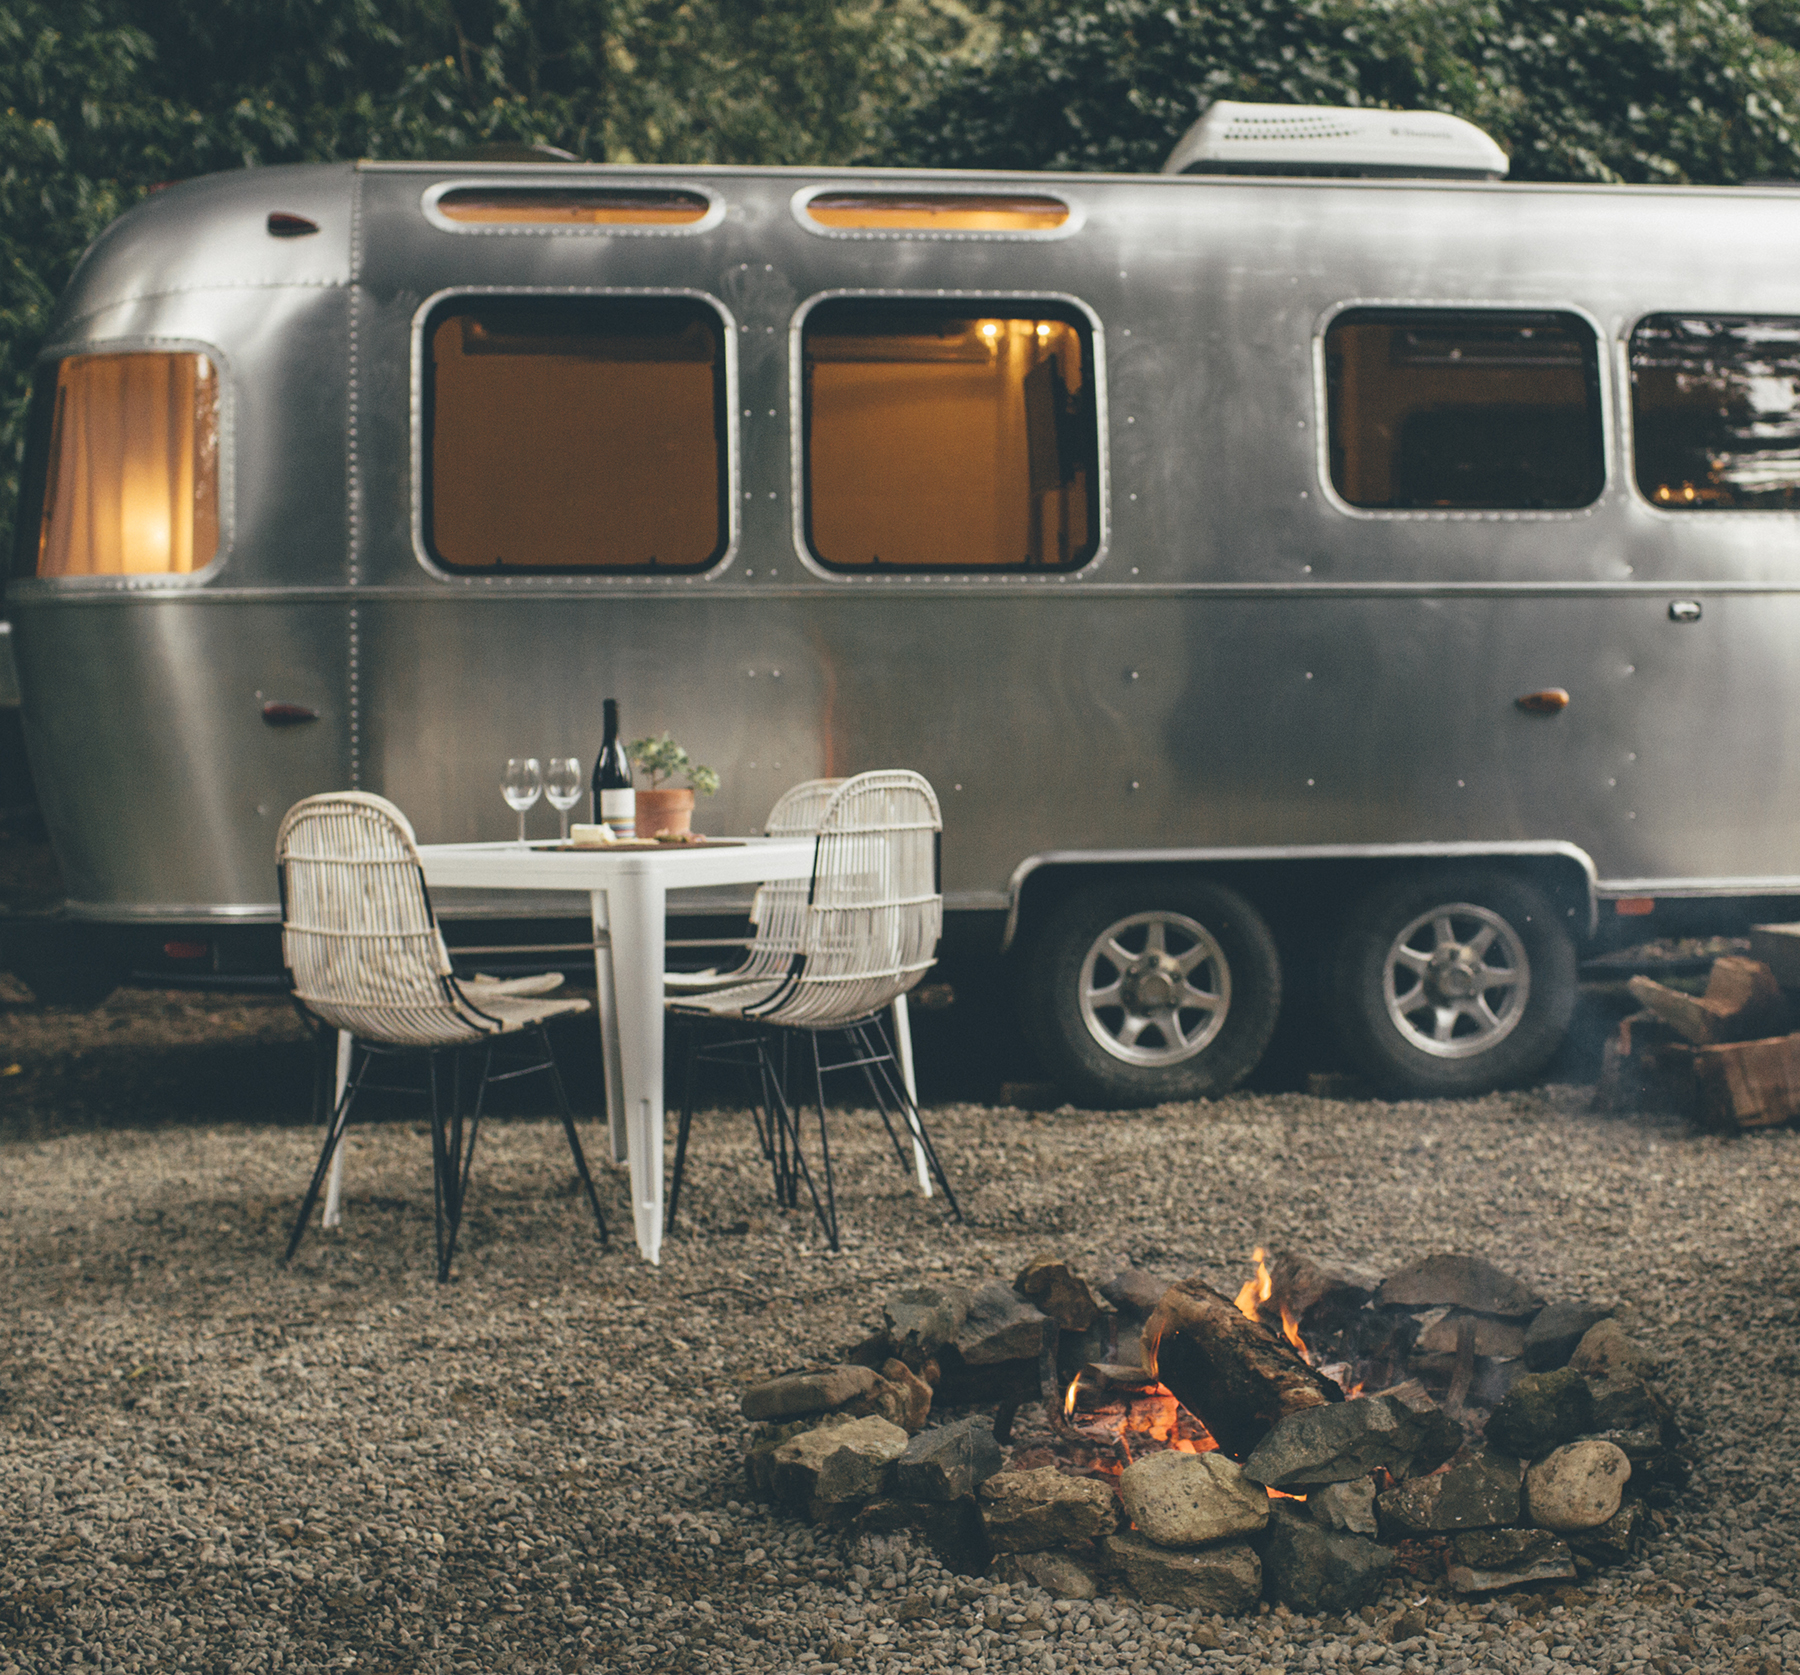 Airstream accommodations in Guerneville, Sonoma County, California